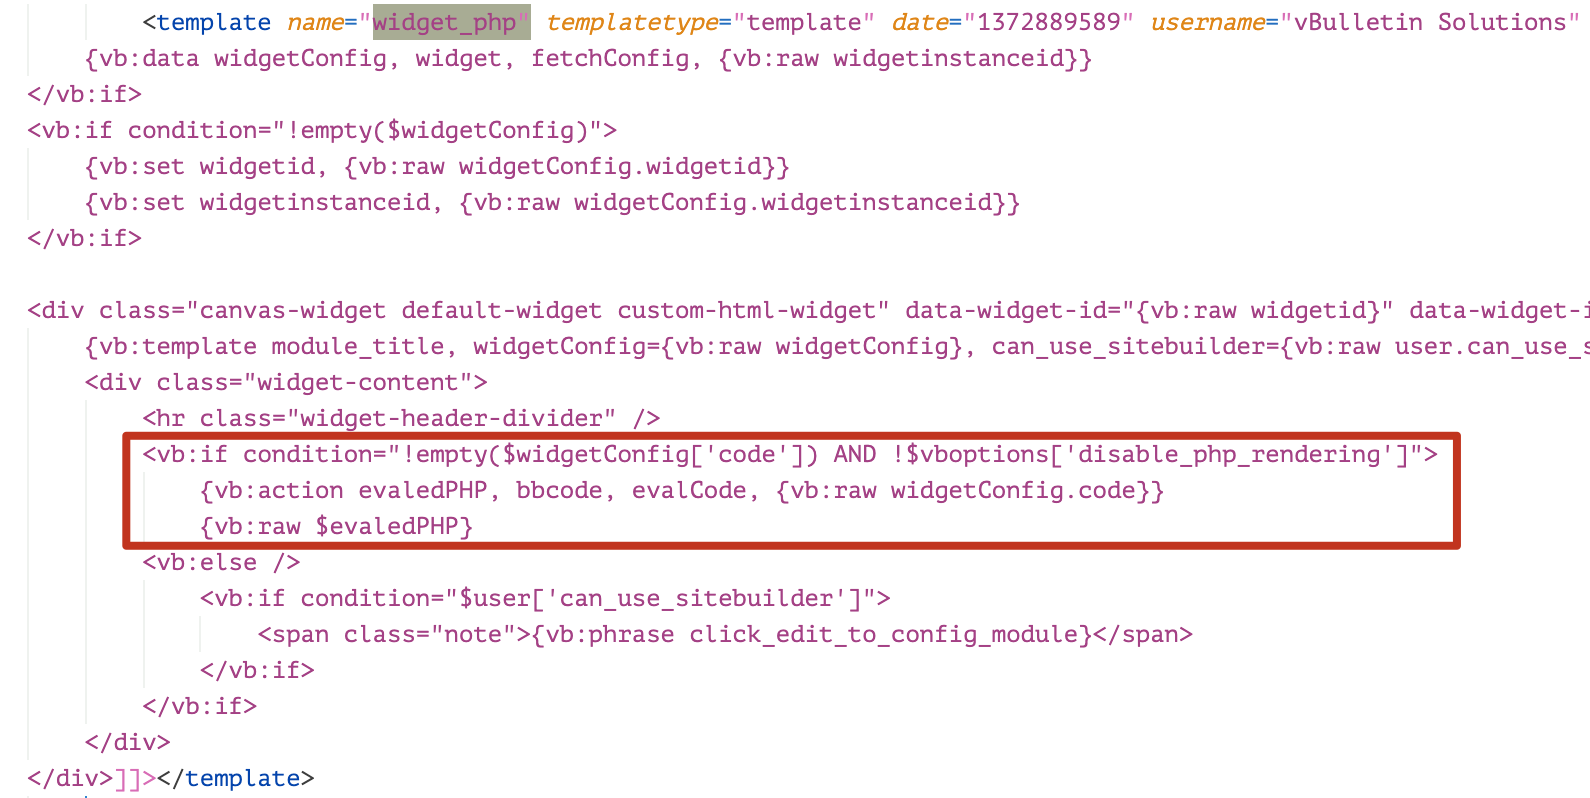 When an attacker manipulates an Ajax request that contains template name widget_php and malicious code placed in the parameter widgetConfig['code'], the render engine will convert the XML template widget_php to a string of PHP code.